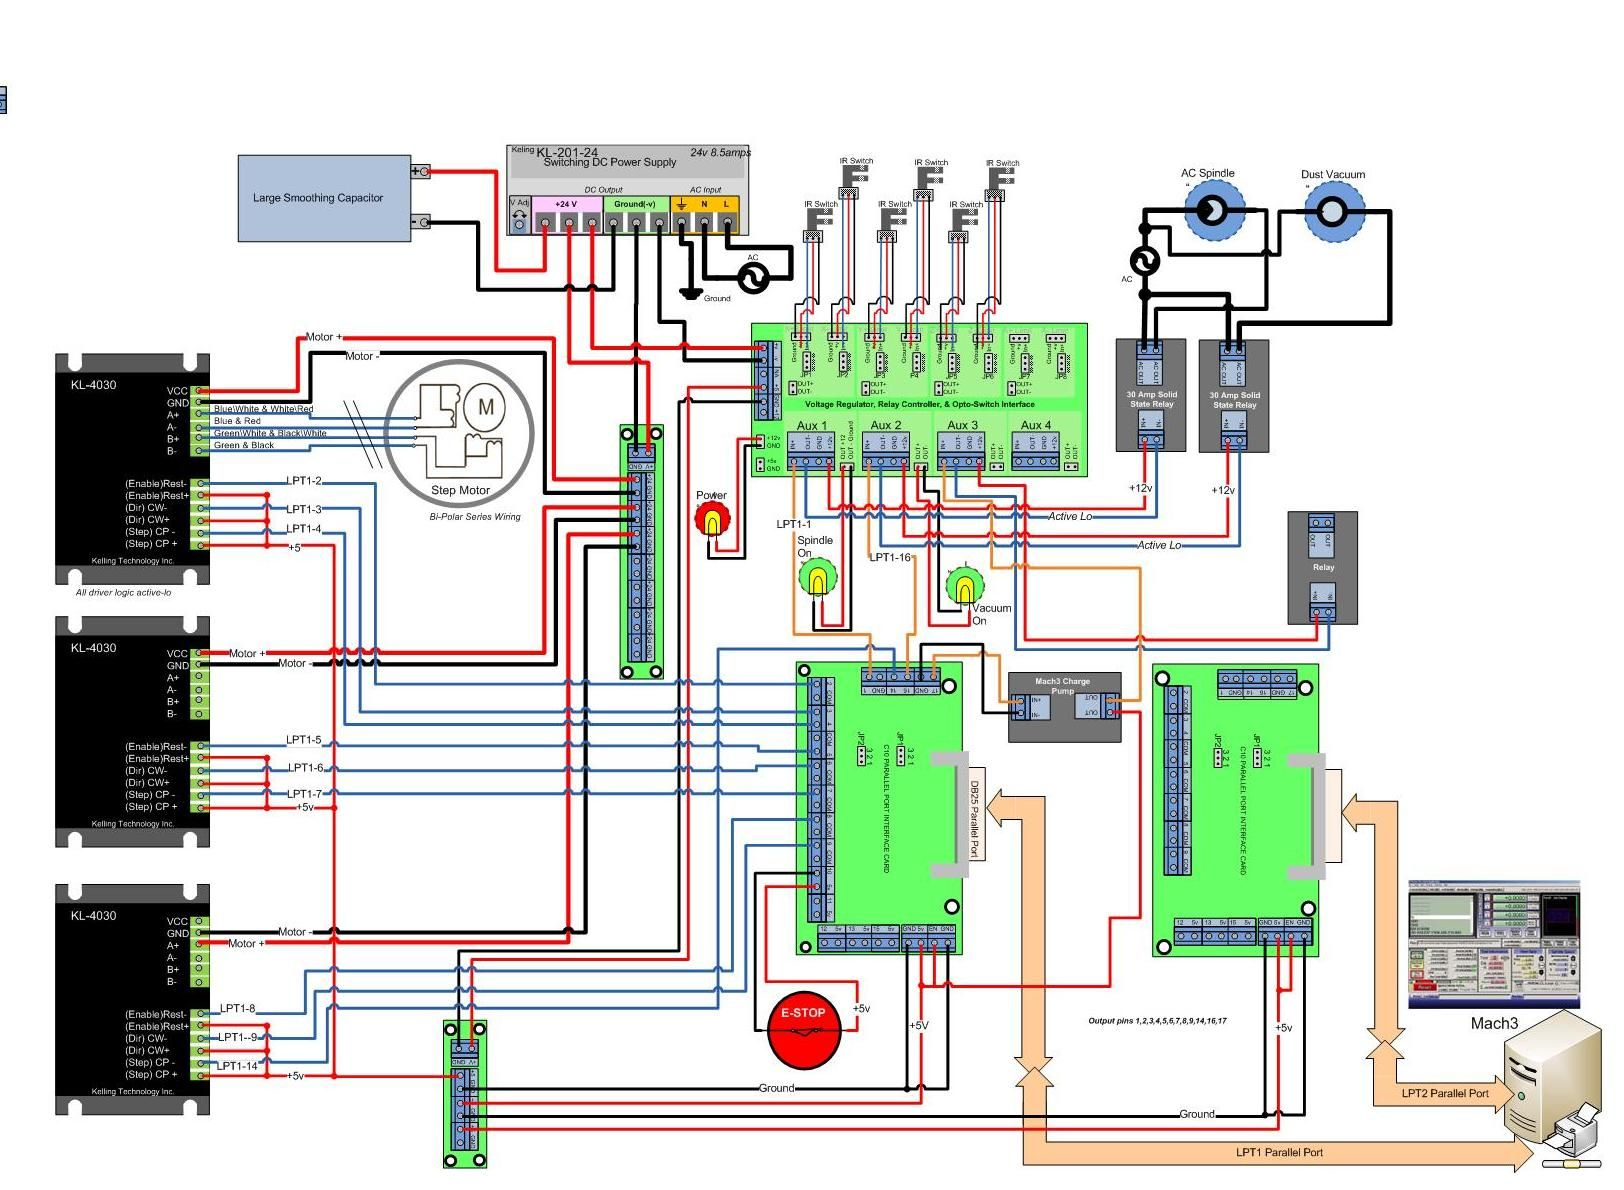 hight resolution of wiring diagram for wireless router wiring diagrams router wiring diagrams